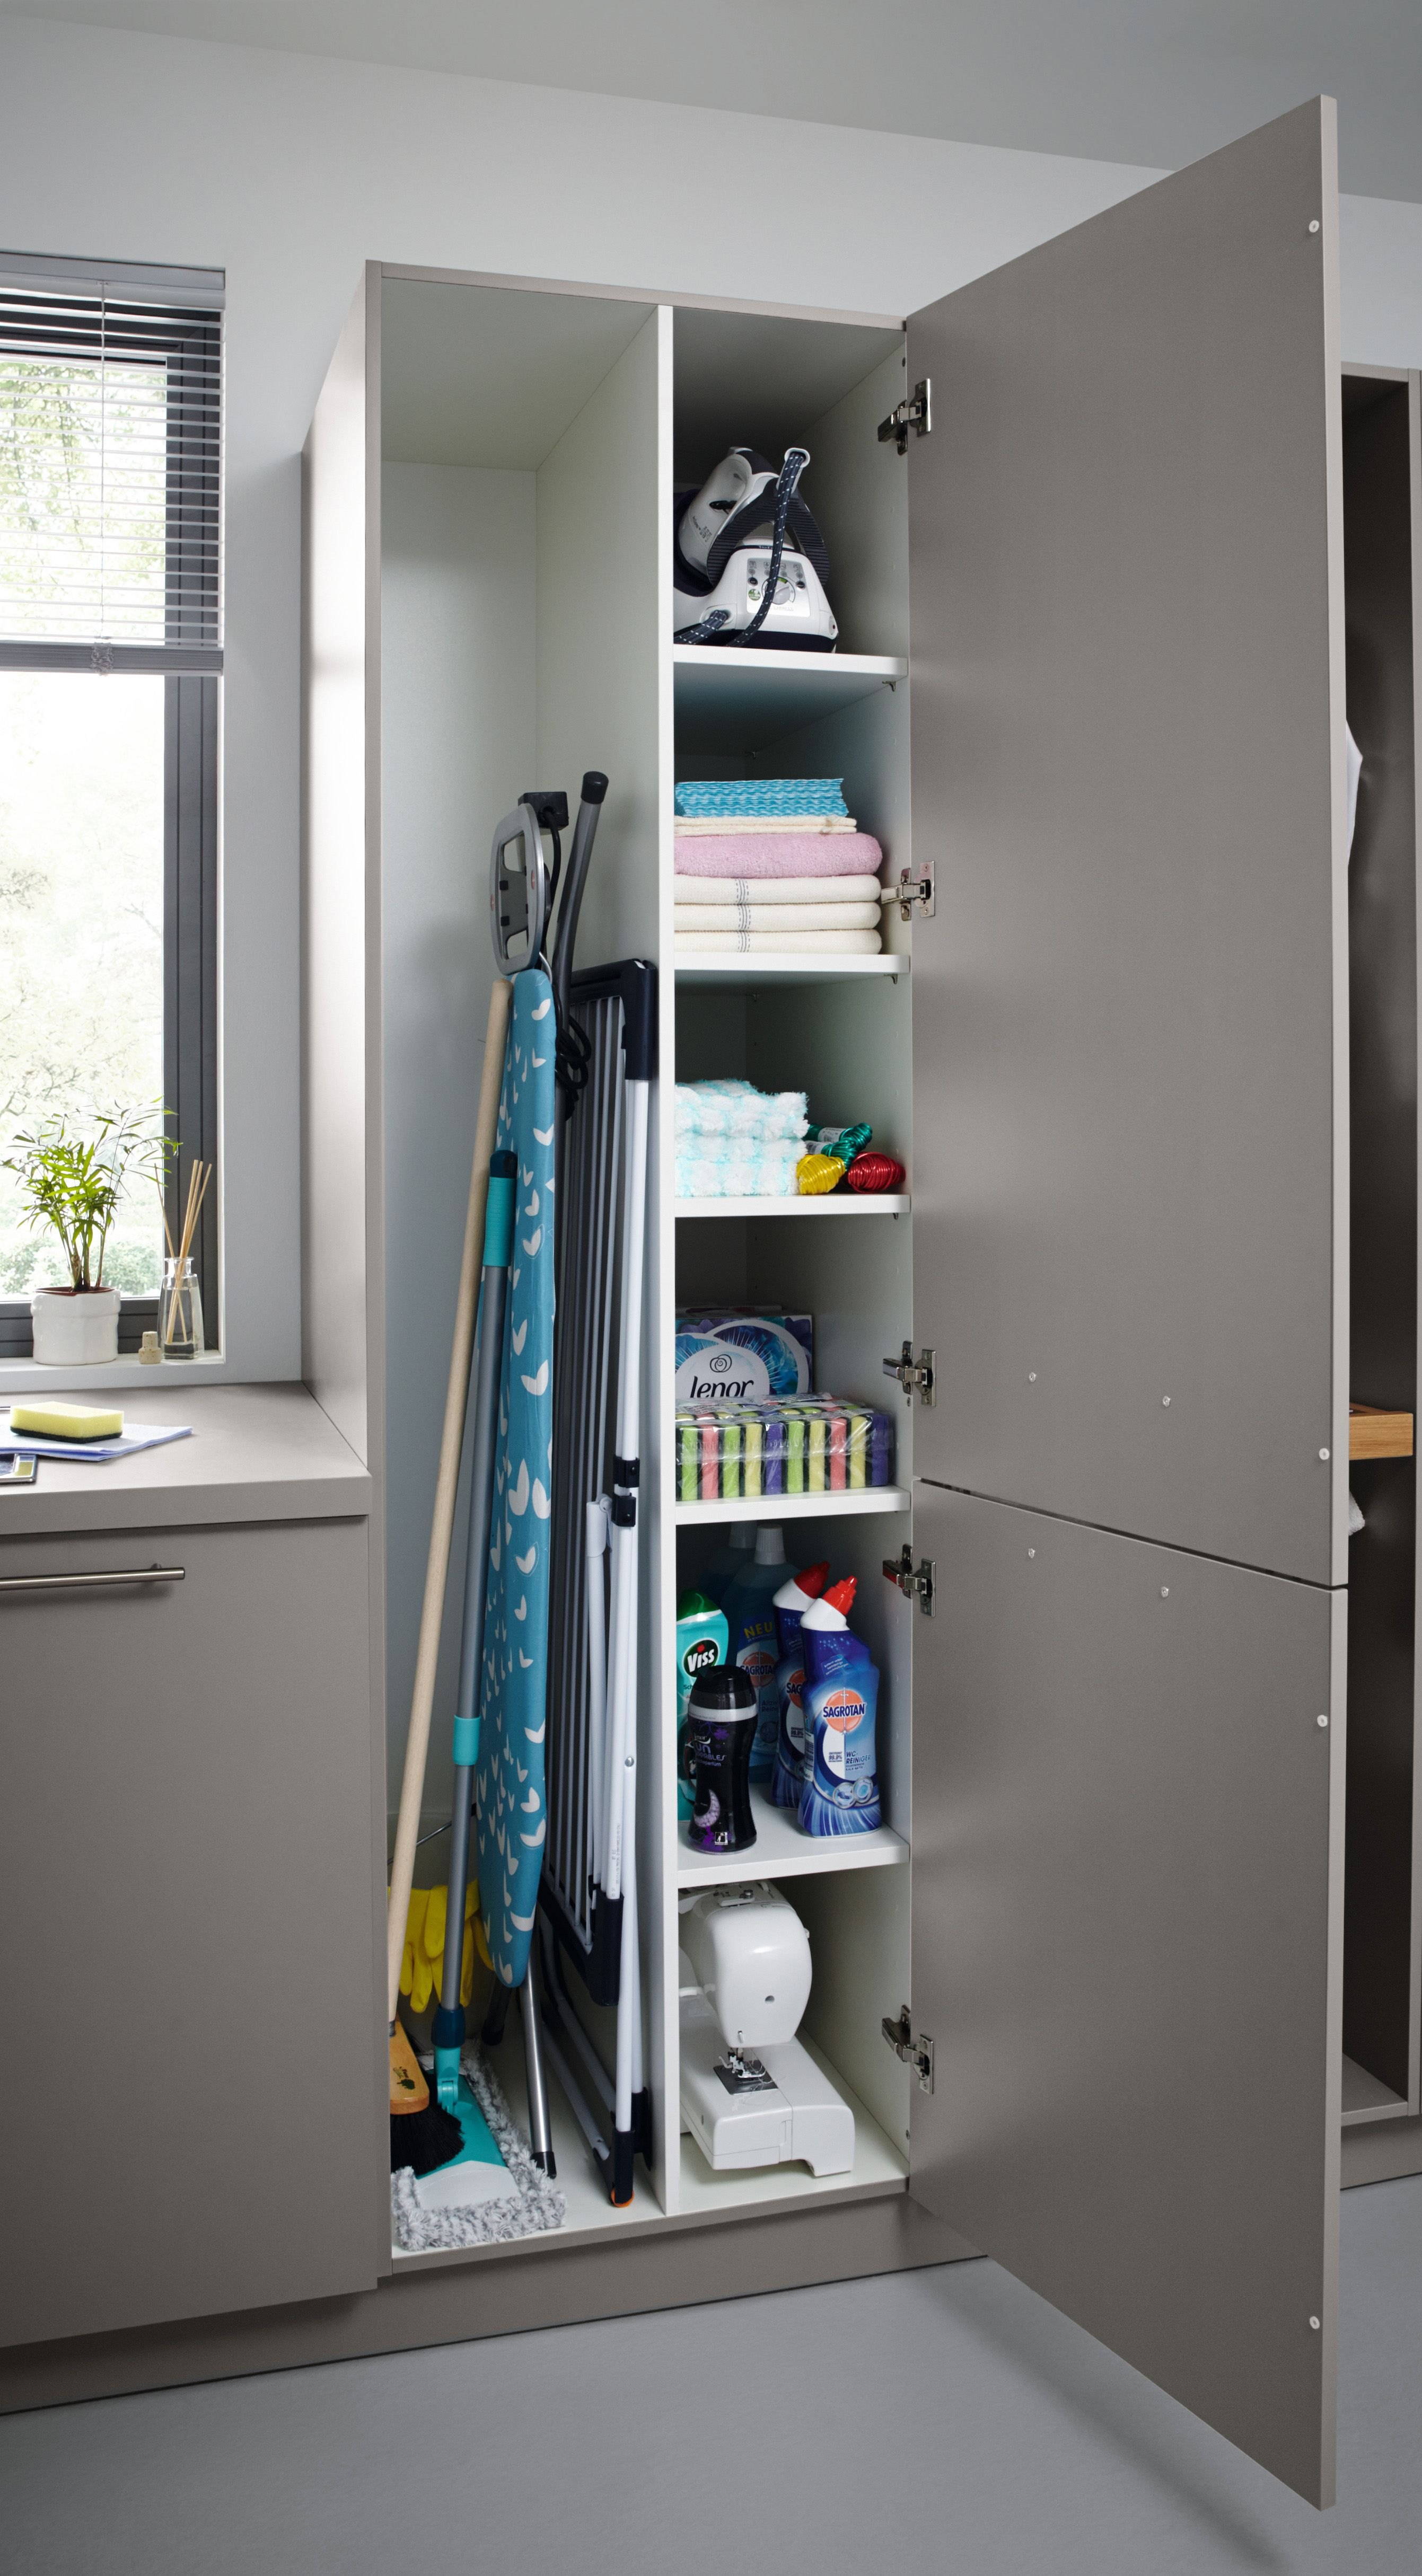 Schuller Ironing board & storage unit #laundryrooms